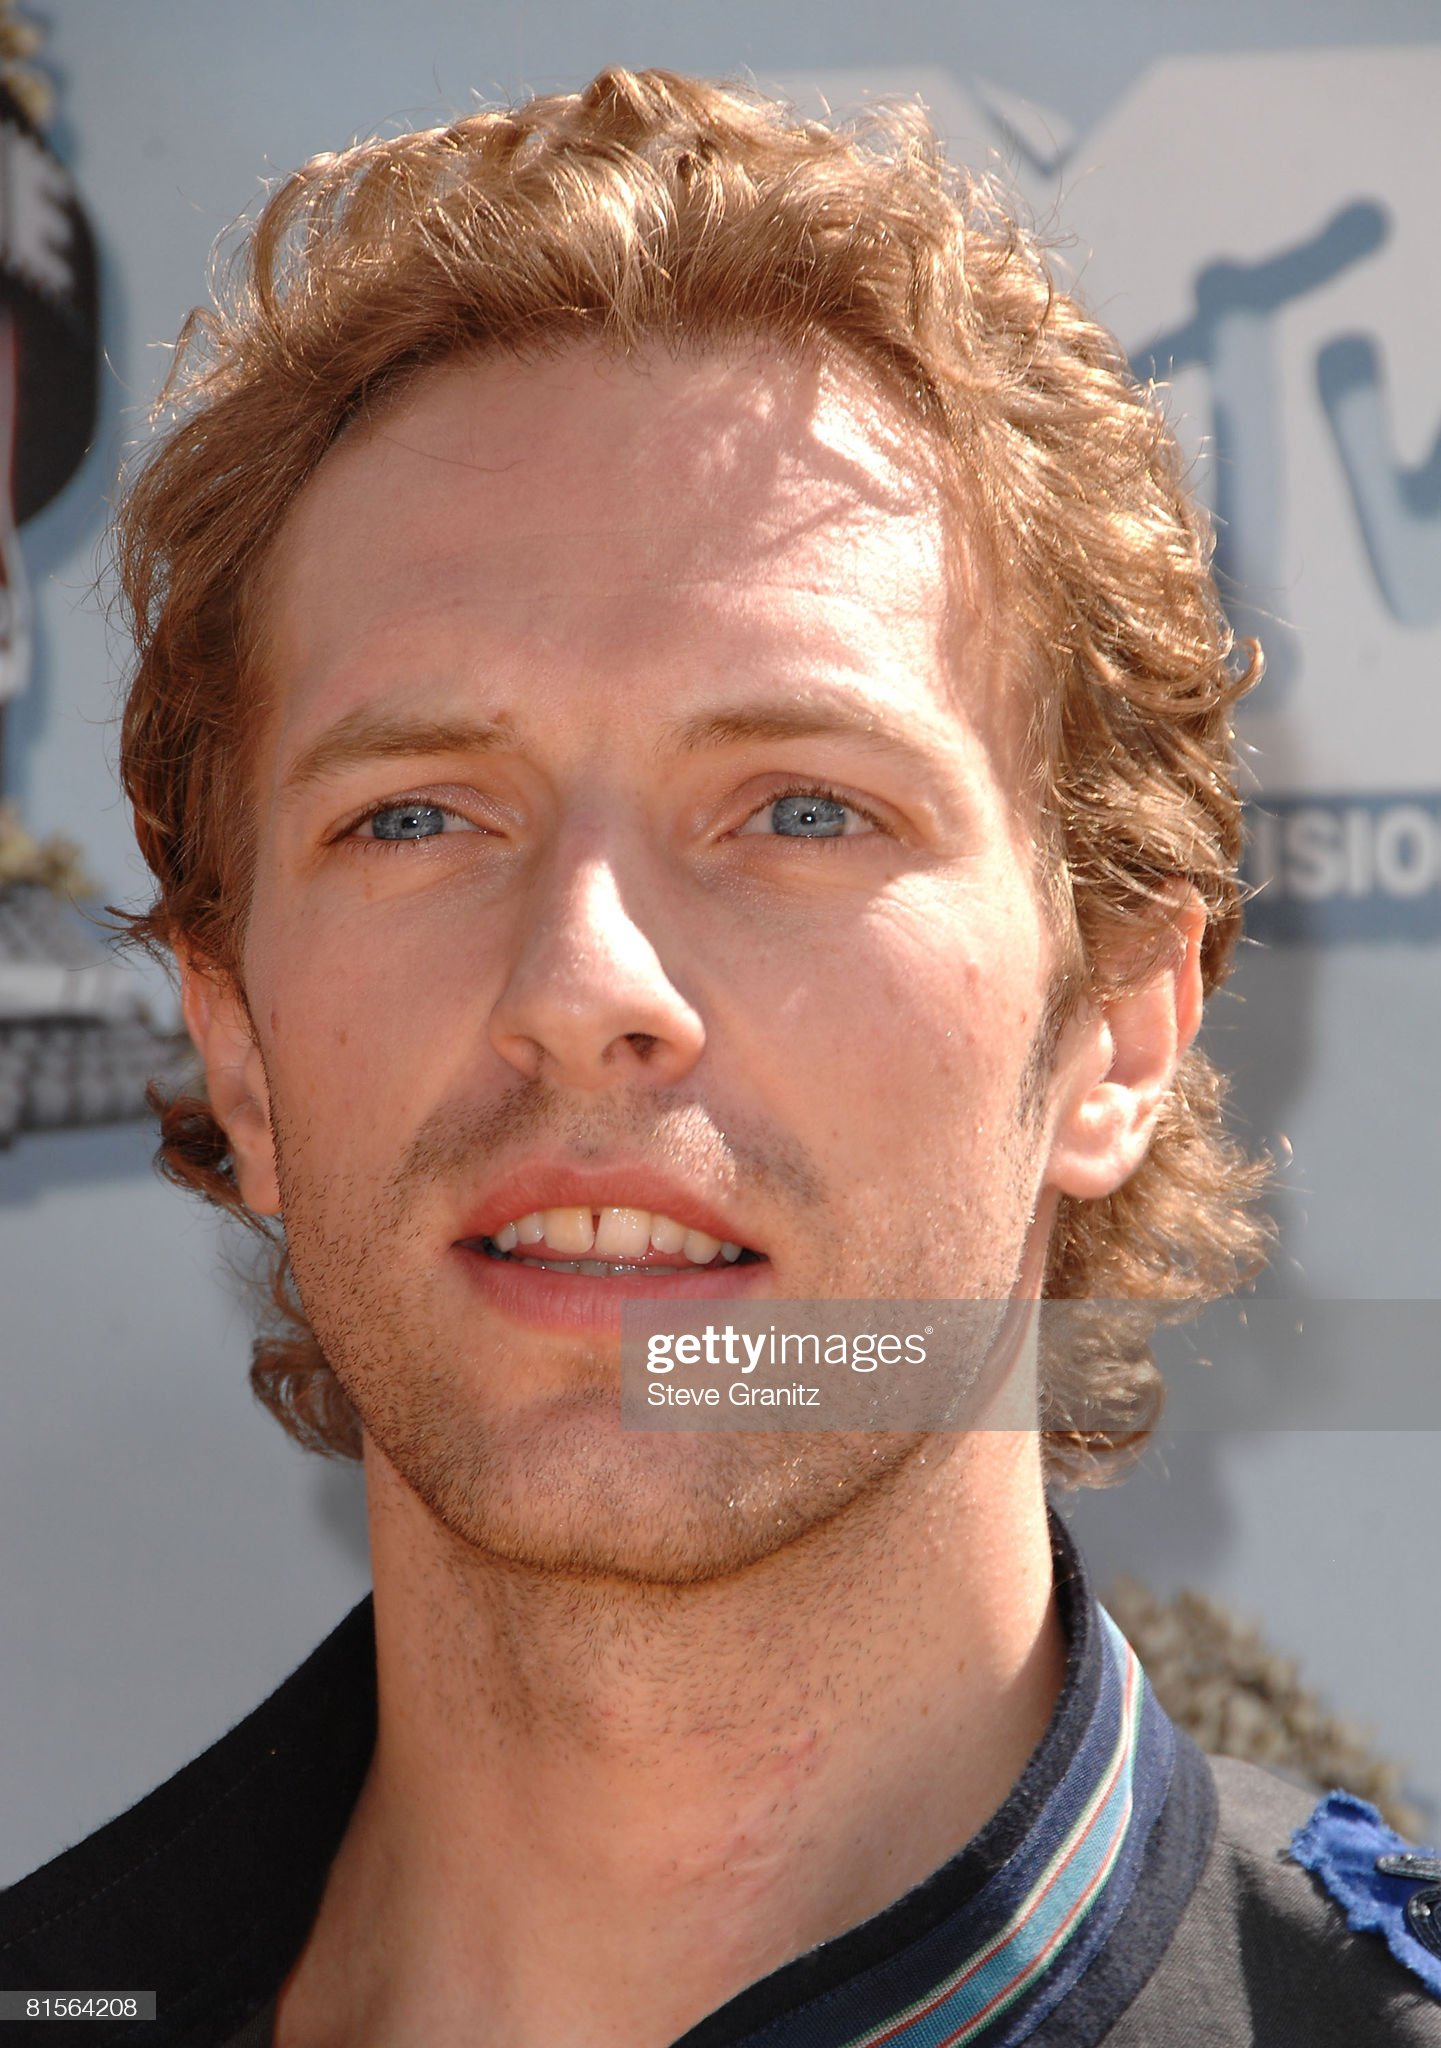 ¿Cuánto mide Chris Martin? - Altura - Real height Singermusician-chris-martin-of-coldplay-arrives-to-the-2008-mtv-movie-picture-id81564208?s=2048x2048